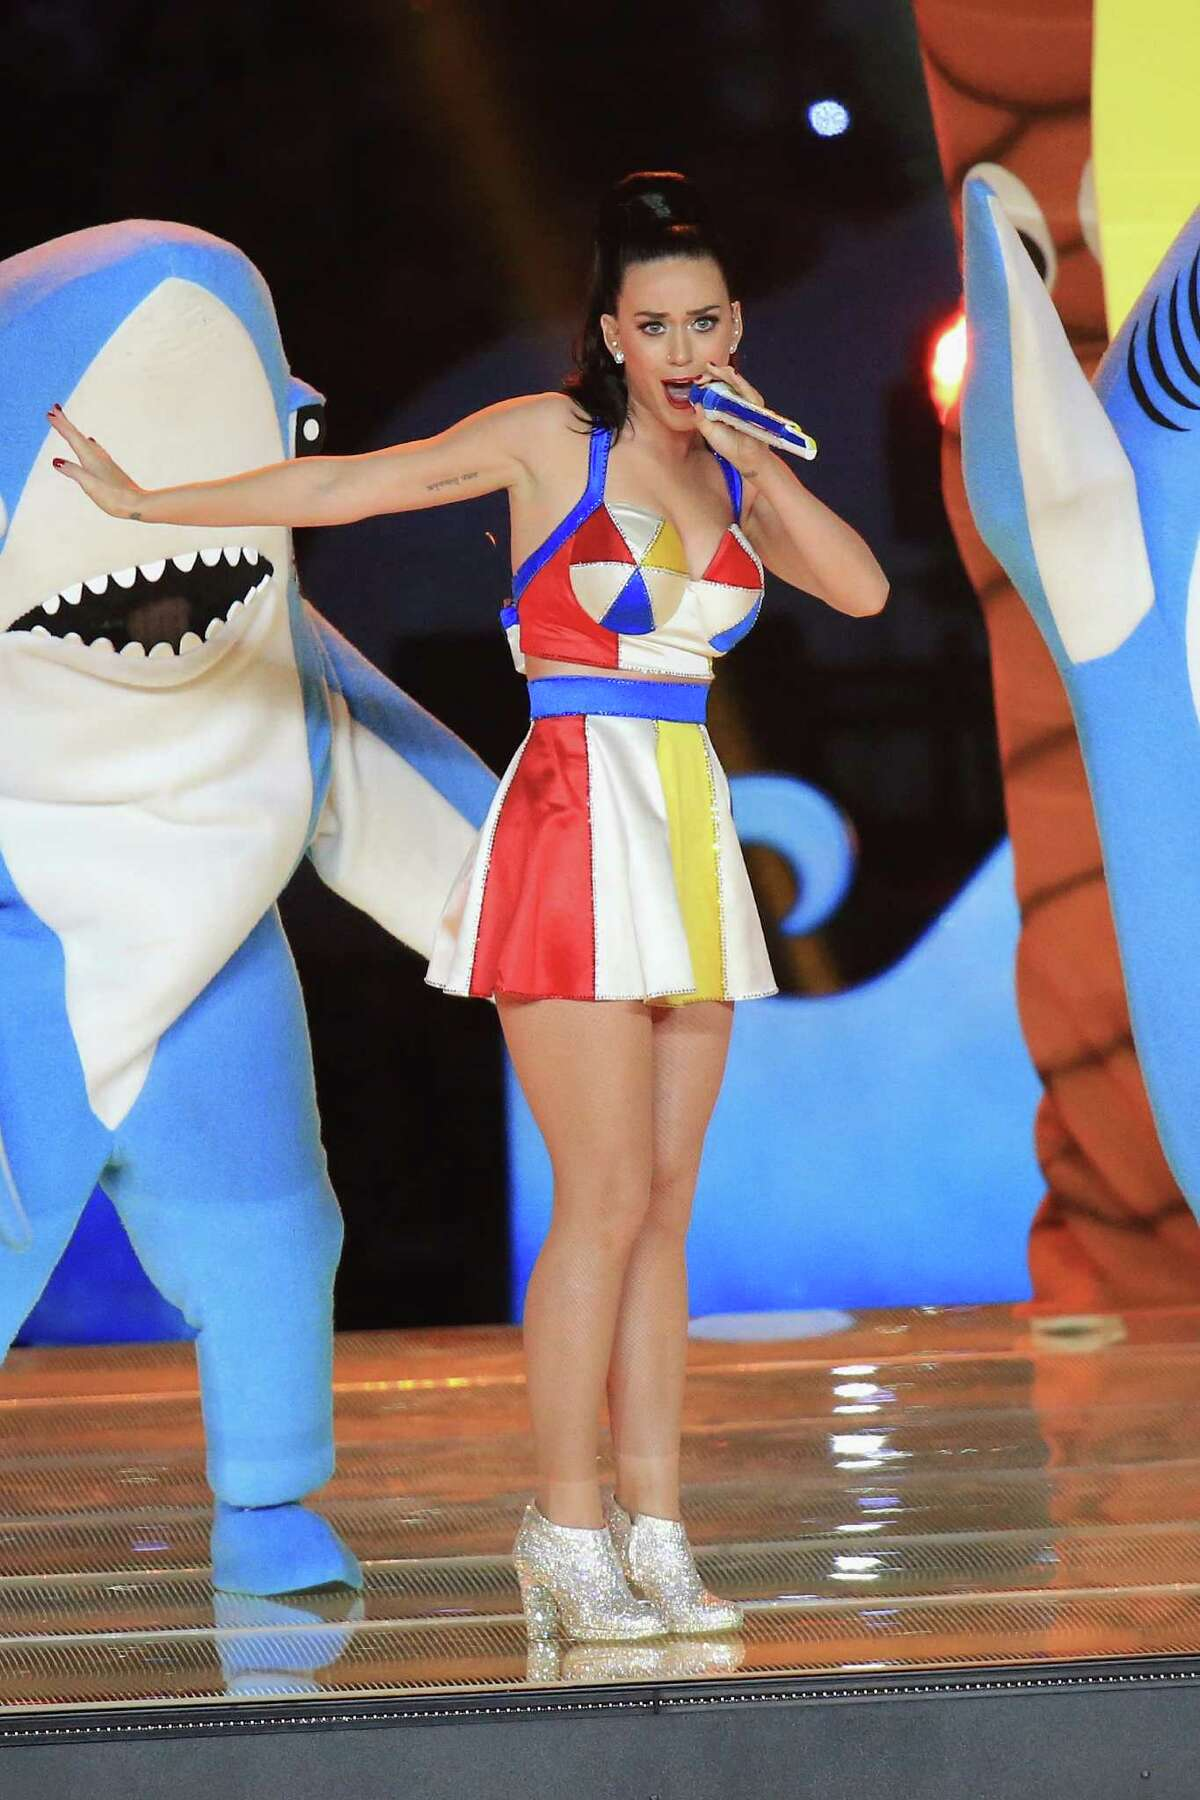 Recording artist Katy Perry performs onstage during the Pepsi Super Bowl XLIX Halftime Show at University of Phoenix Stadium on February 1, 2015 in Glendale, Arizona. (Photo by Christopher Polk/Getty Images) Premium Access Date created: February 01, 2015 Editorial #: 462640942 Restrictions: Contact your local office for all commercial or promotional uses. Full editorial rights UK, US, Ireland, Australia, NZ, Canada (not Quebec). Restricted editorial rights for daily newspapers elsewhere, please call. License type: Rights-managed Similar images View all Pepsi Super Bowl XLIX Halftime Show Pepsi Super Bowl XLIX Halftime Show Pepsi Super Bowl XLIX Halftime Show Pepsi Super Bowl XLIX Halftime Show Pepsi Super Bowl XLIX Halftime Show Pepsi Super Bowl XLIX Halftime Show Pepsi Super Bowl XLIX Halftime Show Pepsi Super Bowl XLIX Halftime Show Pepsi Super Bowl XLIX Halftime Show Pepsi Super Bowl XLIX Halftime Show Pepsi Super Bowl XLIX Halftime Show Pepsi Super Bowl XLIX Halftime Show Pepsi Super Bowl XLIX Halftime Show Pepsi Super Bowl XLIX Halftime Show Pepsi Super Bowl XLIX Halftime Show Pepsi Super Bowl XLIX Halftime Show Pepsi Super Bowl XLIX Halftime Show Pepsi Super Bowl XLIX Halftime Show Pepsi Super Bowl XLIX Halftime Show Pepsi Super Bowl XLIX Halftime Show Pepsi Super Bowl XLIX Halftime Show Pepsi Super Bowl XLIX Halftime Show Pepsi Super Bowl XLIX Halftime Show Pepsi Super Bowl XLIX Halftime Show Pepsi Super Bowl XLIX Halftime Show Pepsi Super Bowl XLIX Halftime Show Pepsi Super Bowl XLIX Halftime Show Pepsi Super Bowl XLIX Halftime Show Pepsi Super Bowl XLIX Halftime Show Pepsi Super Bowl XLIX Halftime Show EXPLORE THE NEW...